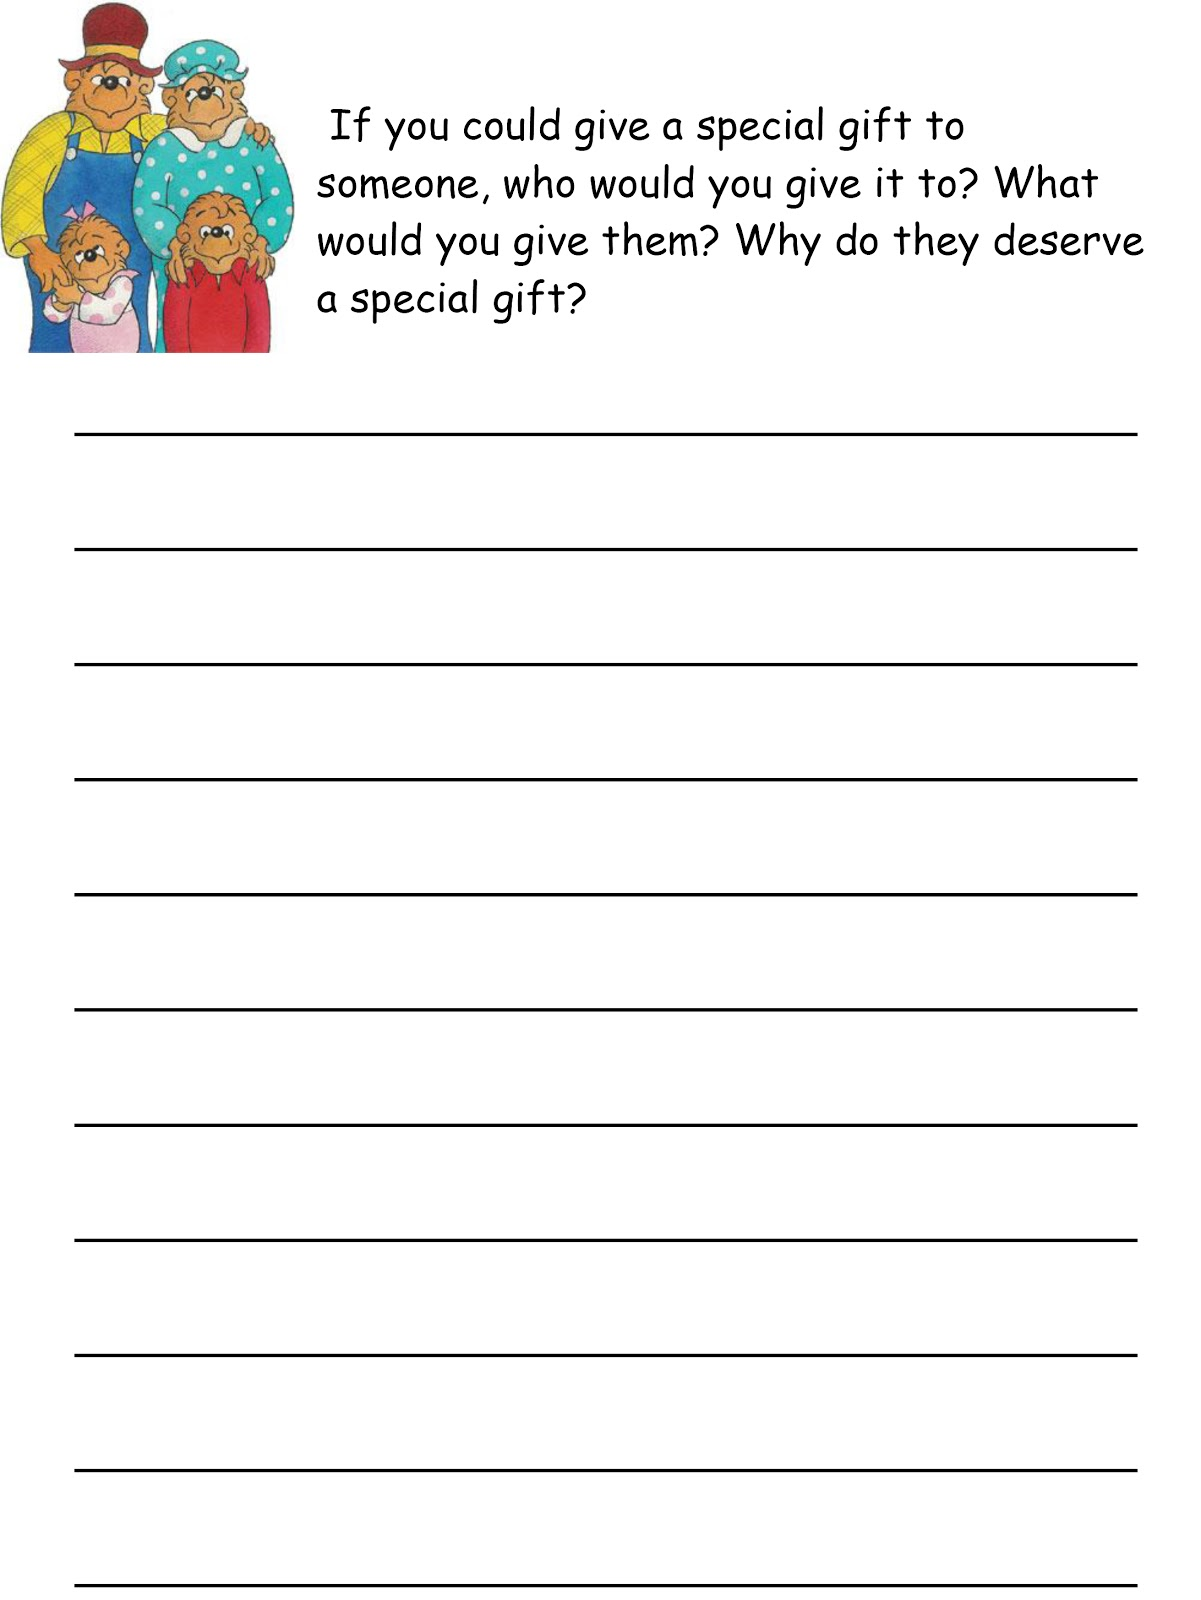 Creative writing service worksheets